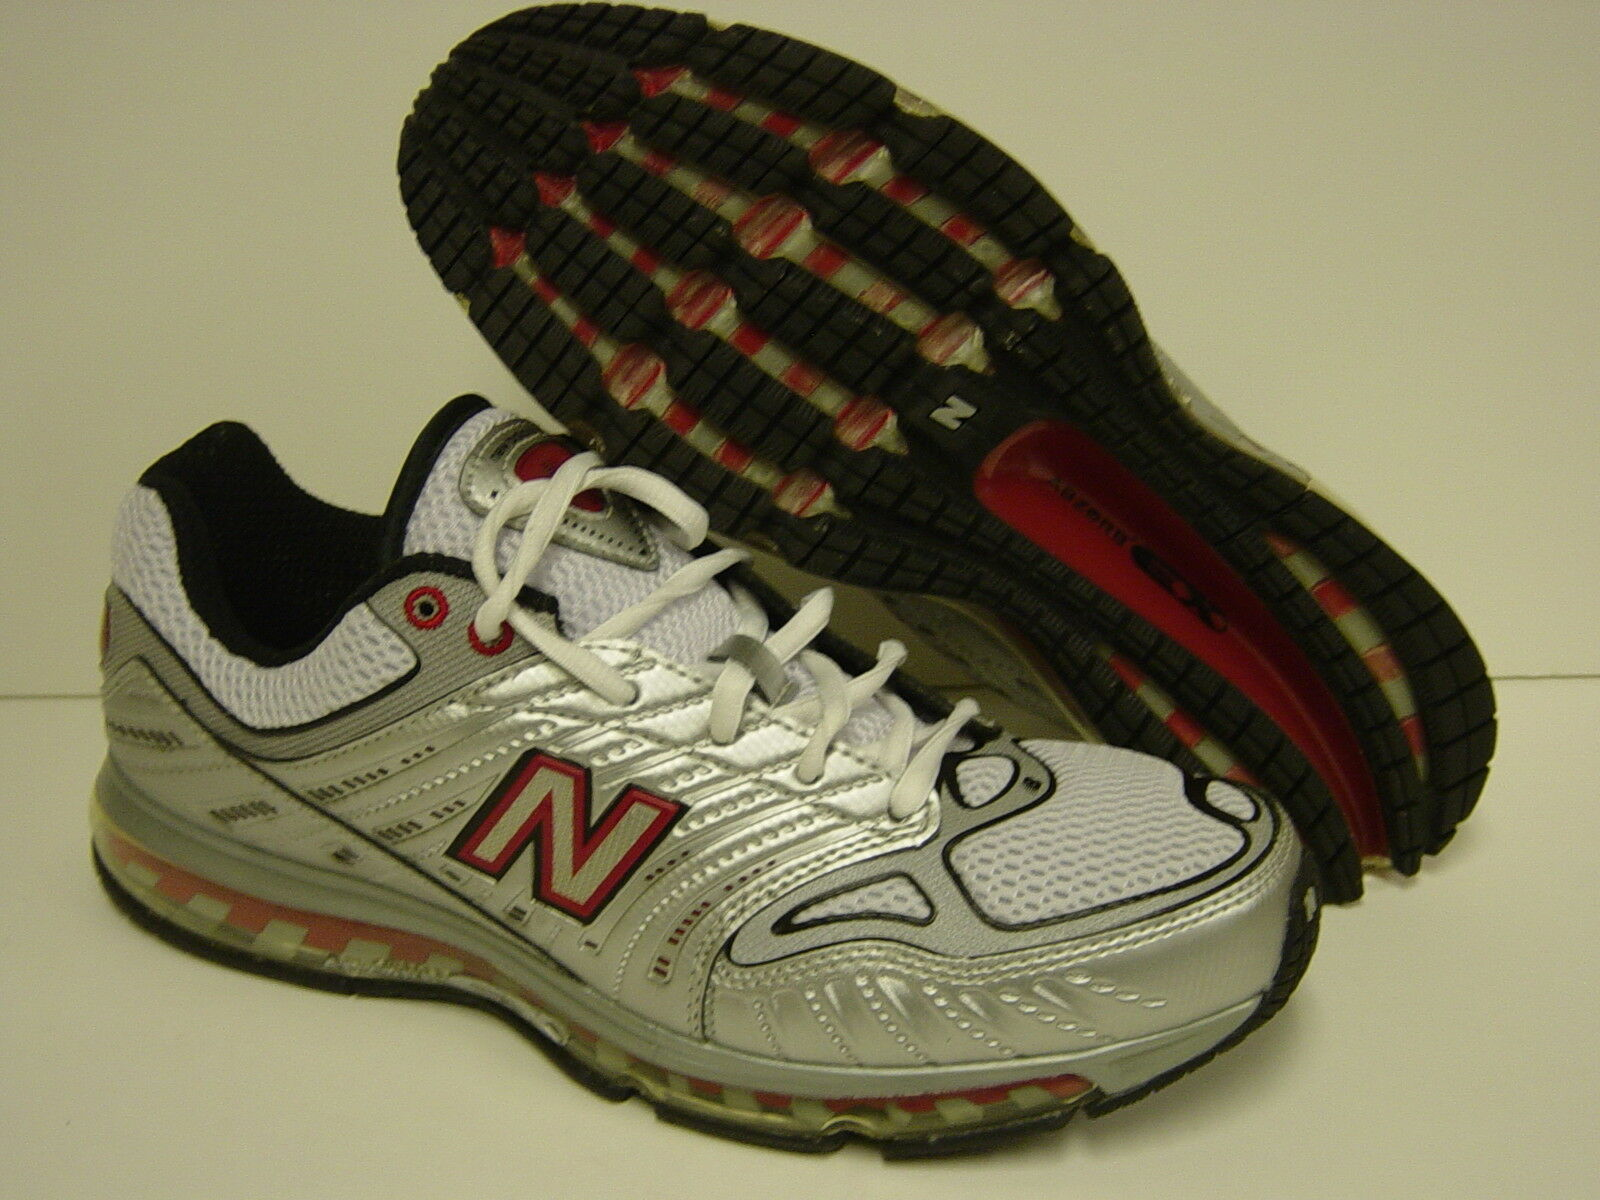 NEW Mens Sz 8.5 NEW BALANCE 1350 SR Silver Red Sneakers Shoes